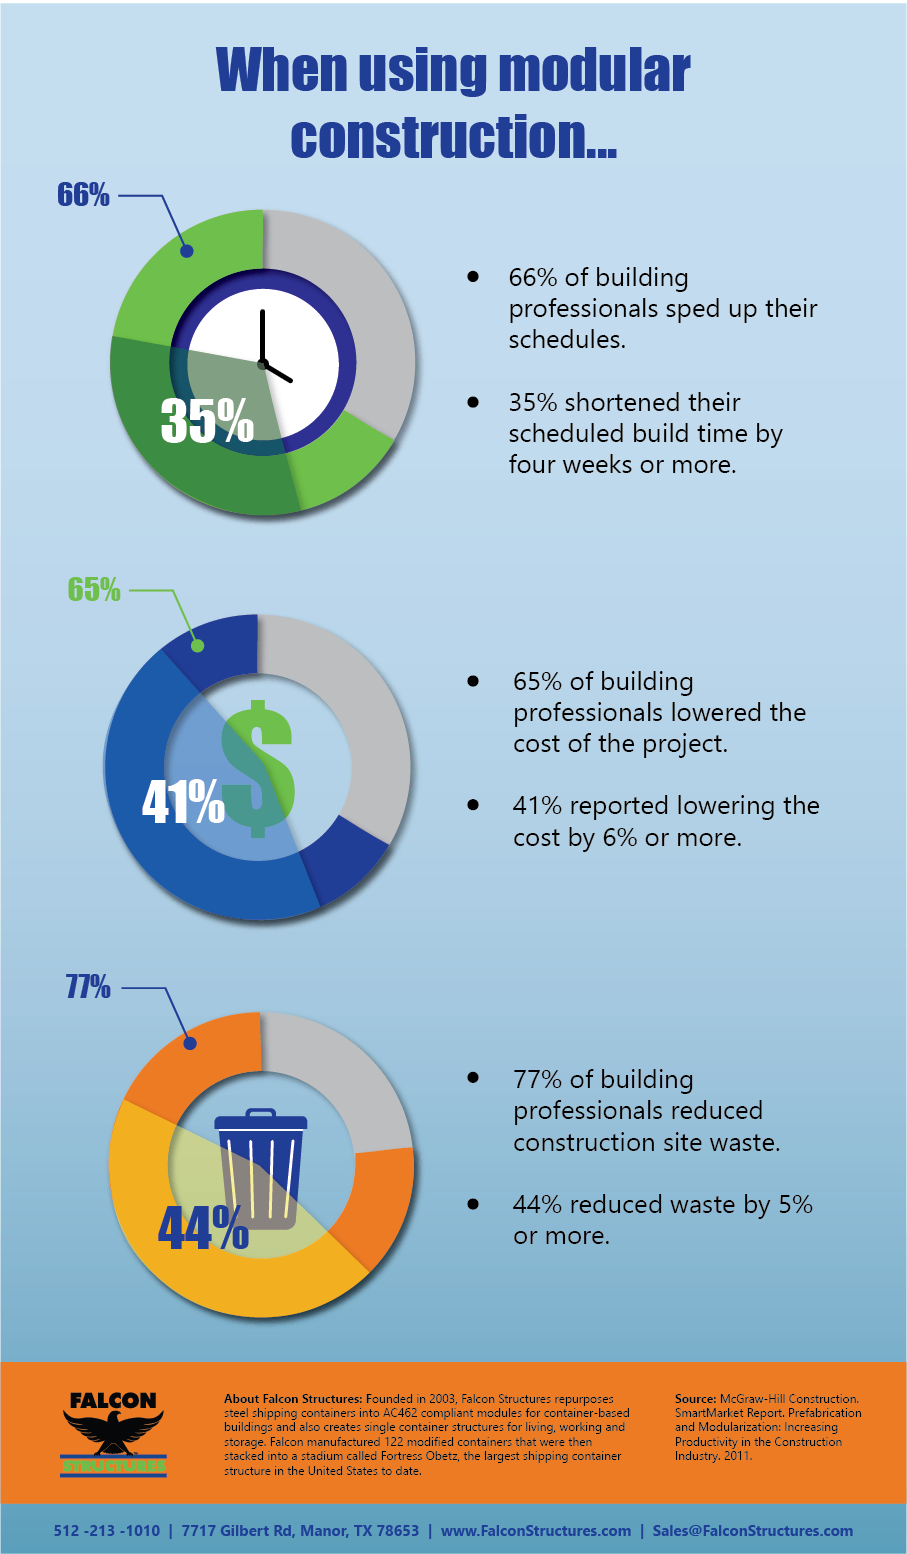 Infographic with modular construction statistics.